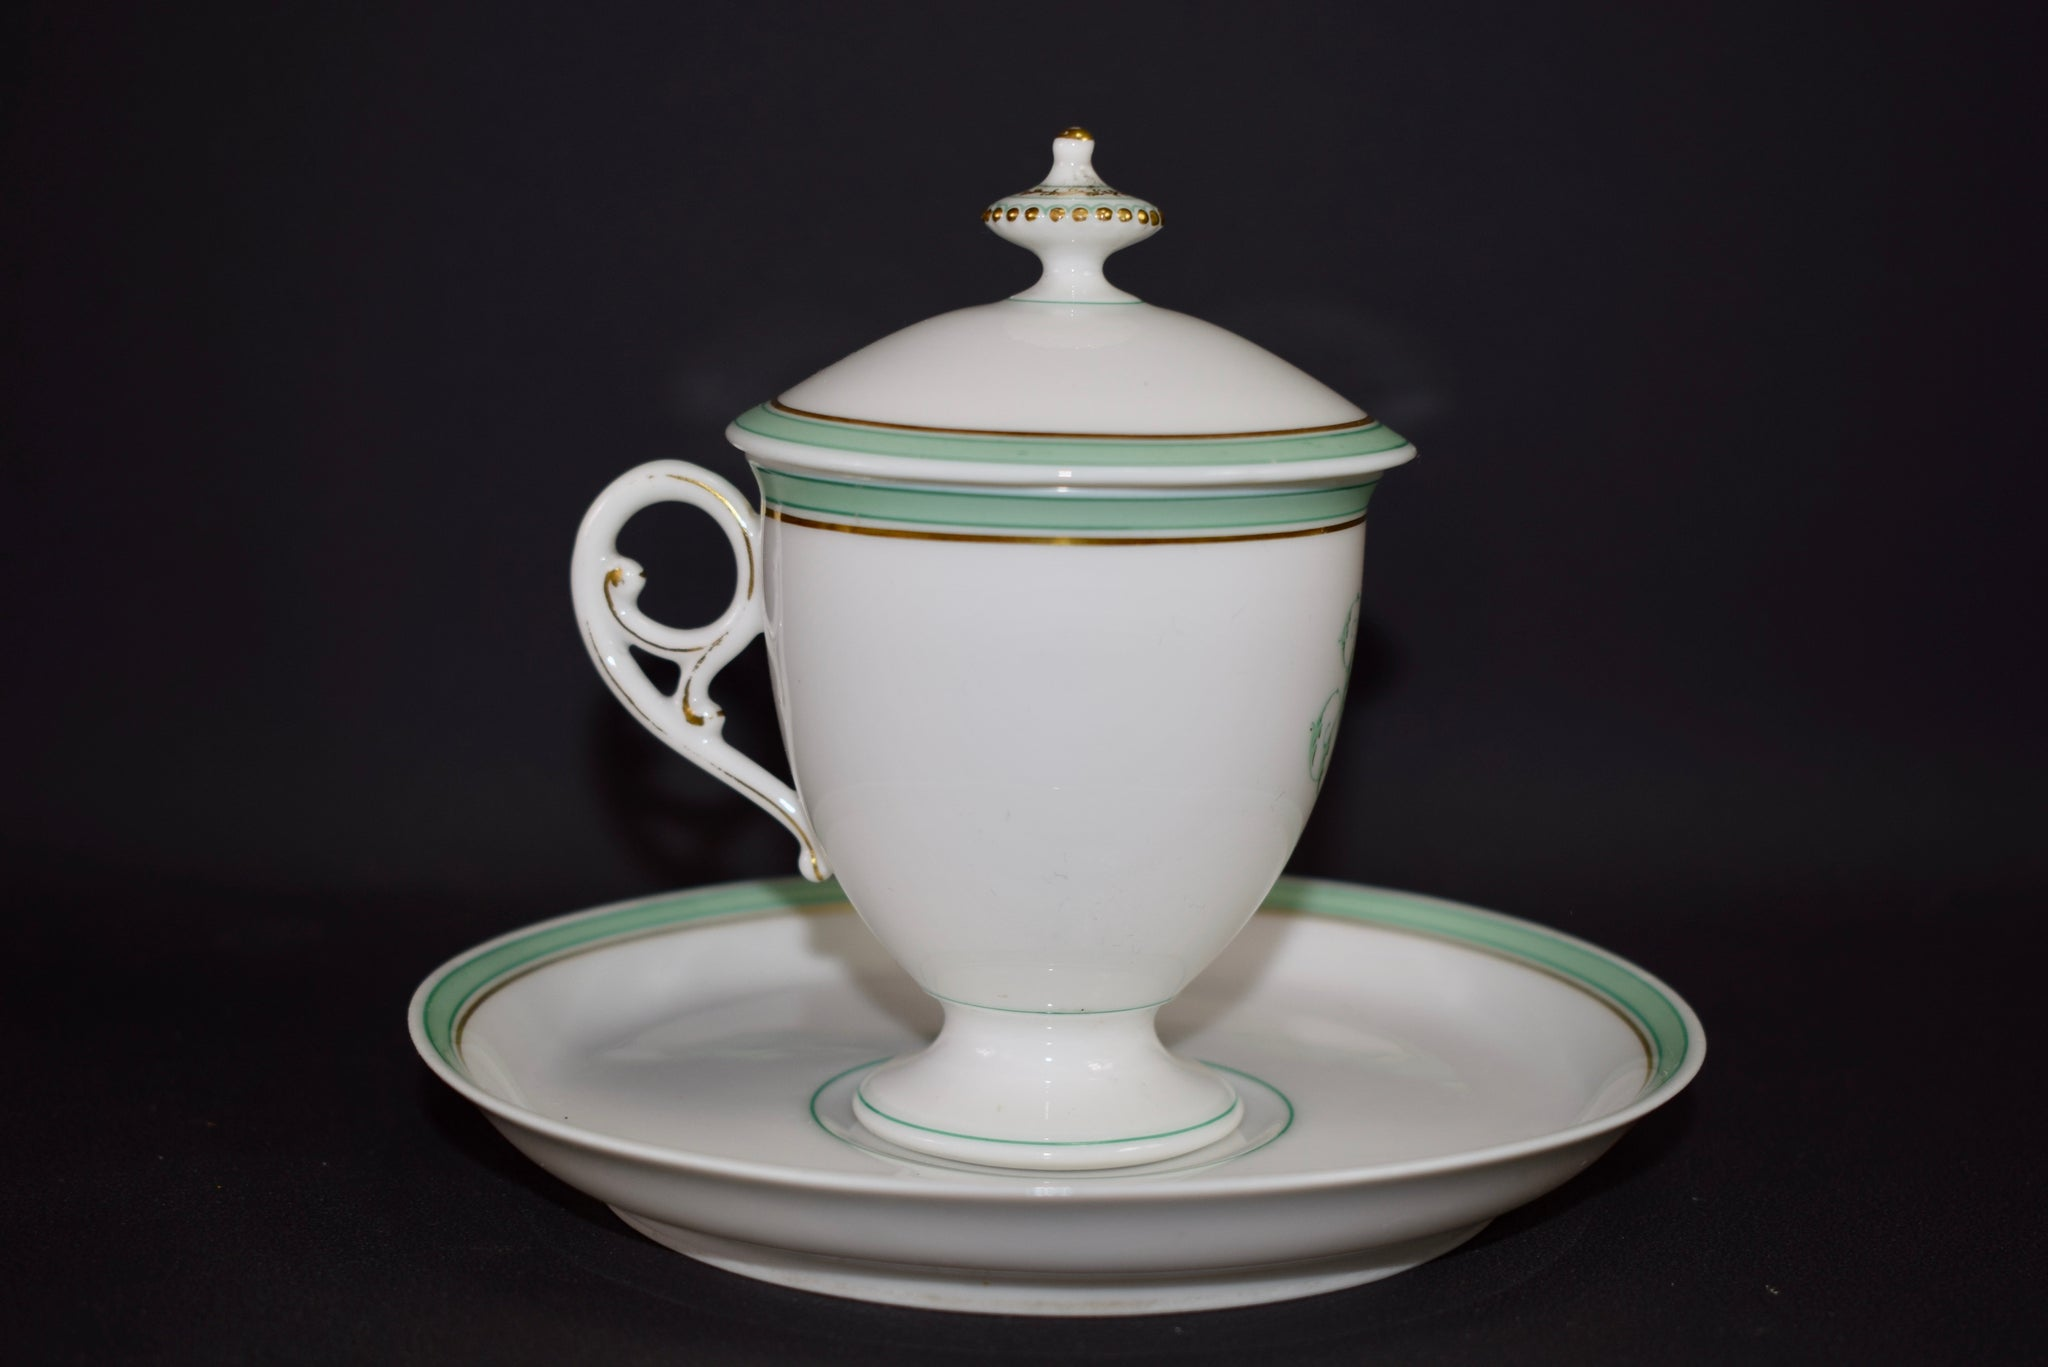 French Porcelain cream pot / cup and saucer of Paris 19th - Saint Honoré Paris N1